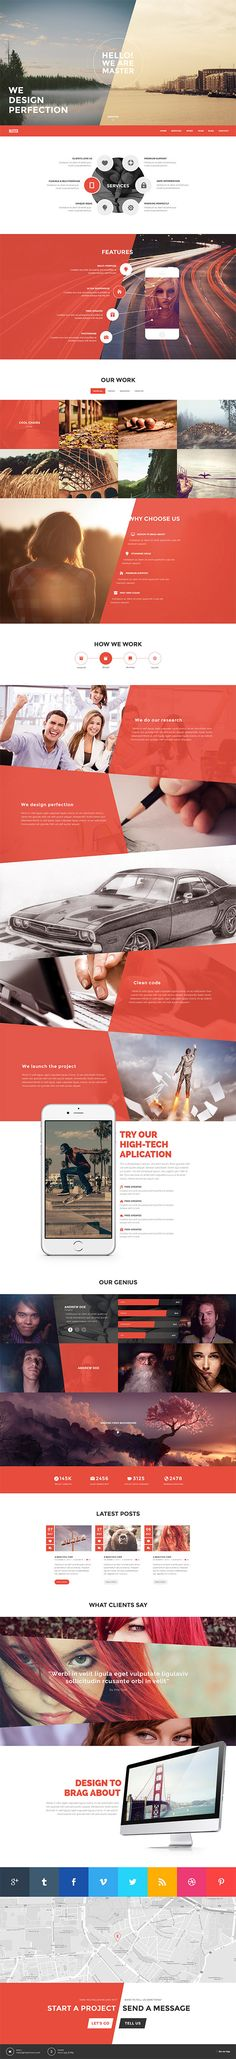 Grab This Month's (Aug.) FREE One Page HTML 5 Portfolio Template